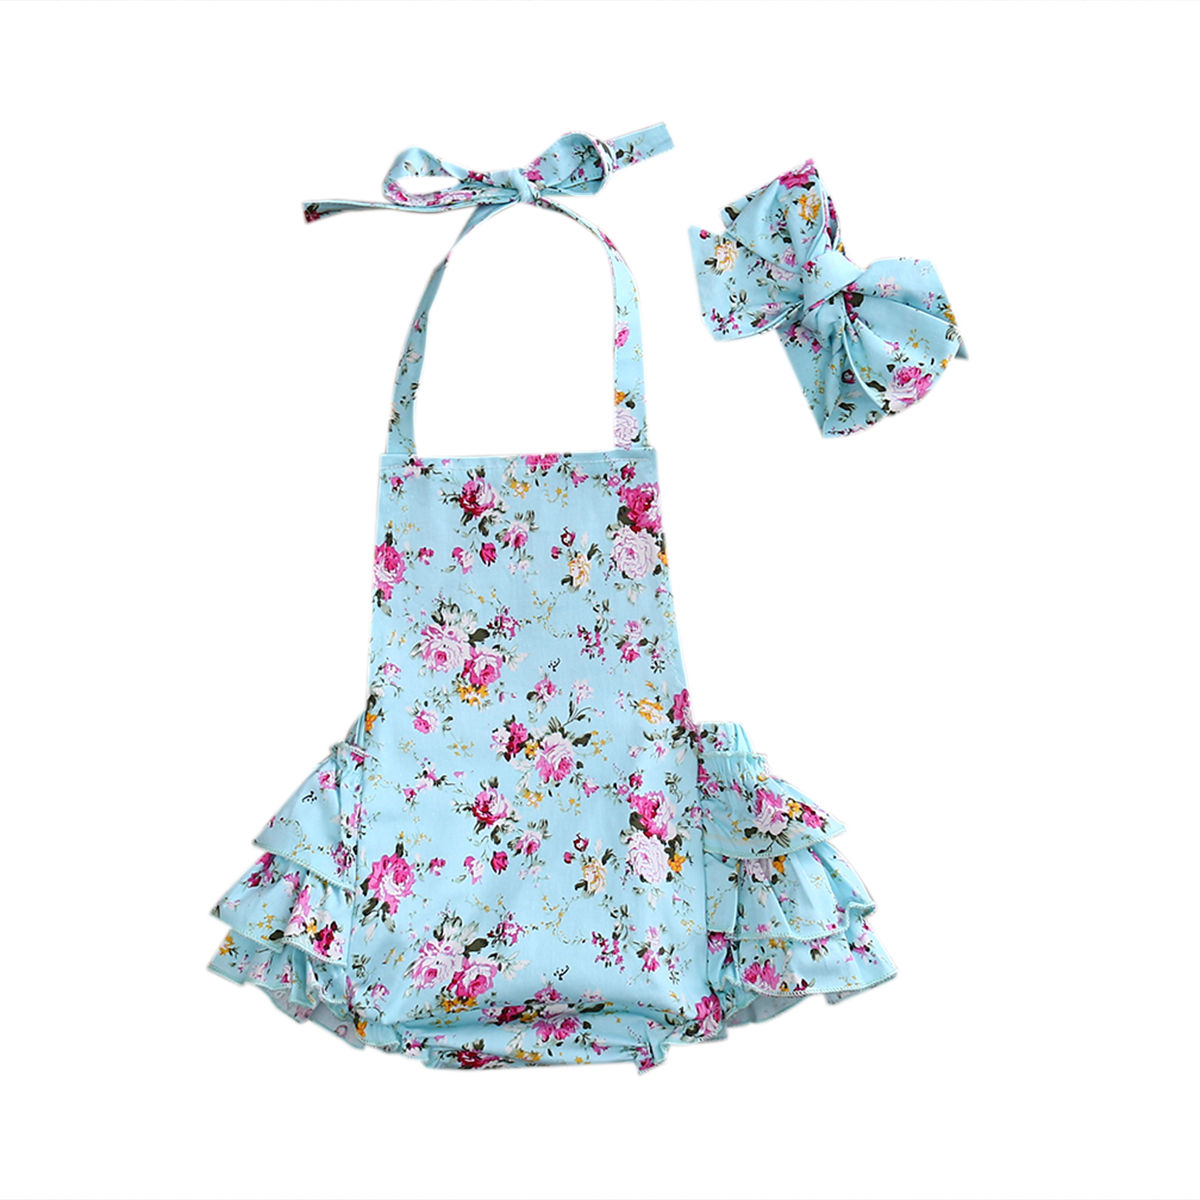 Summer Newborn Infant Baby Girls Floral Tiered Romper Jumpsuit Outfit Sunsuit Playsuit Belt Cotton Clothes kawaii shark print newborn baby girls strap romper jumpsuit one piece sunsuit outfit clothes